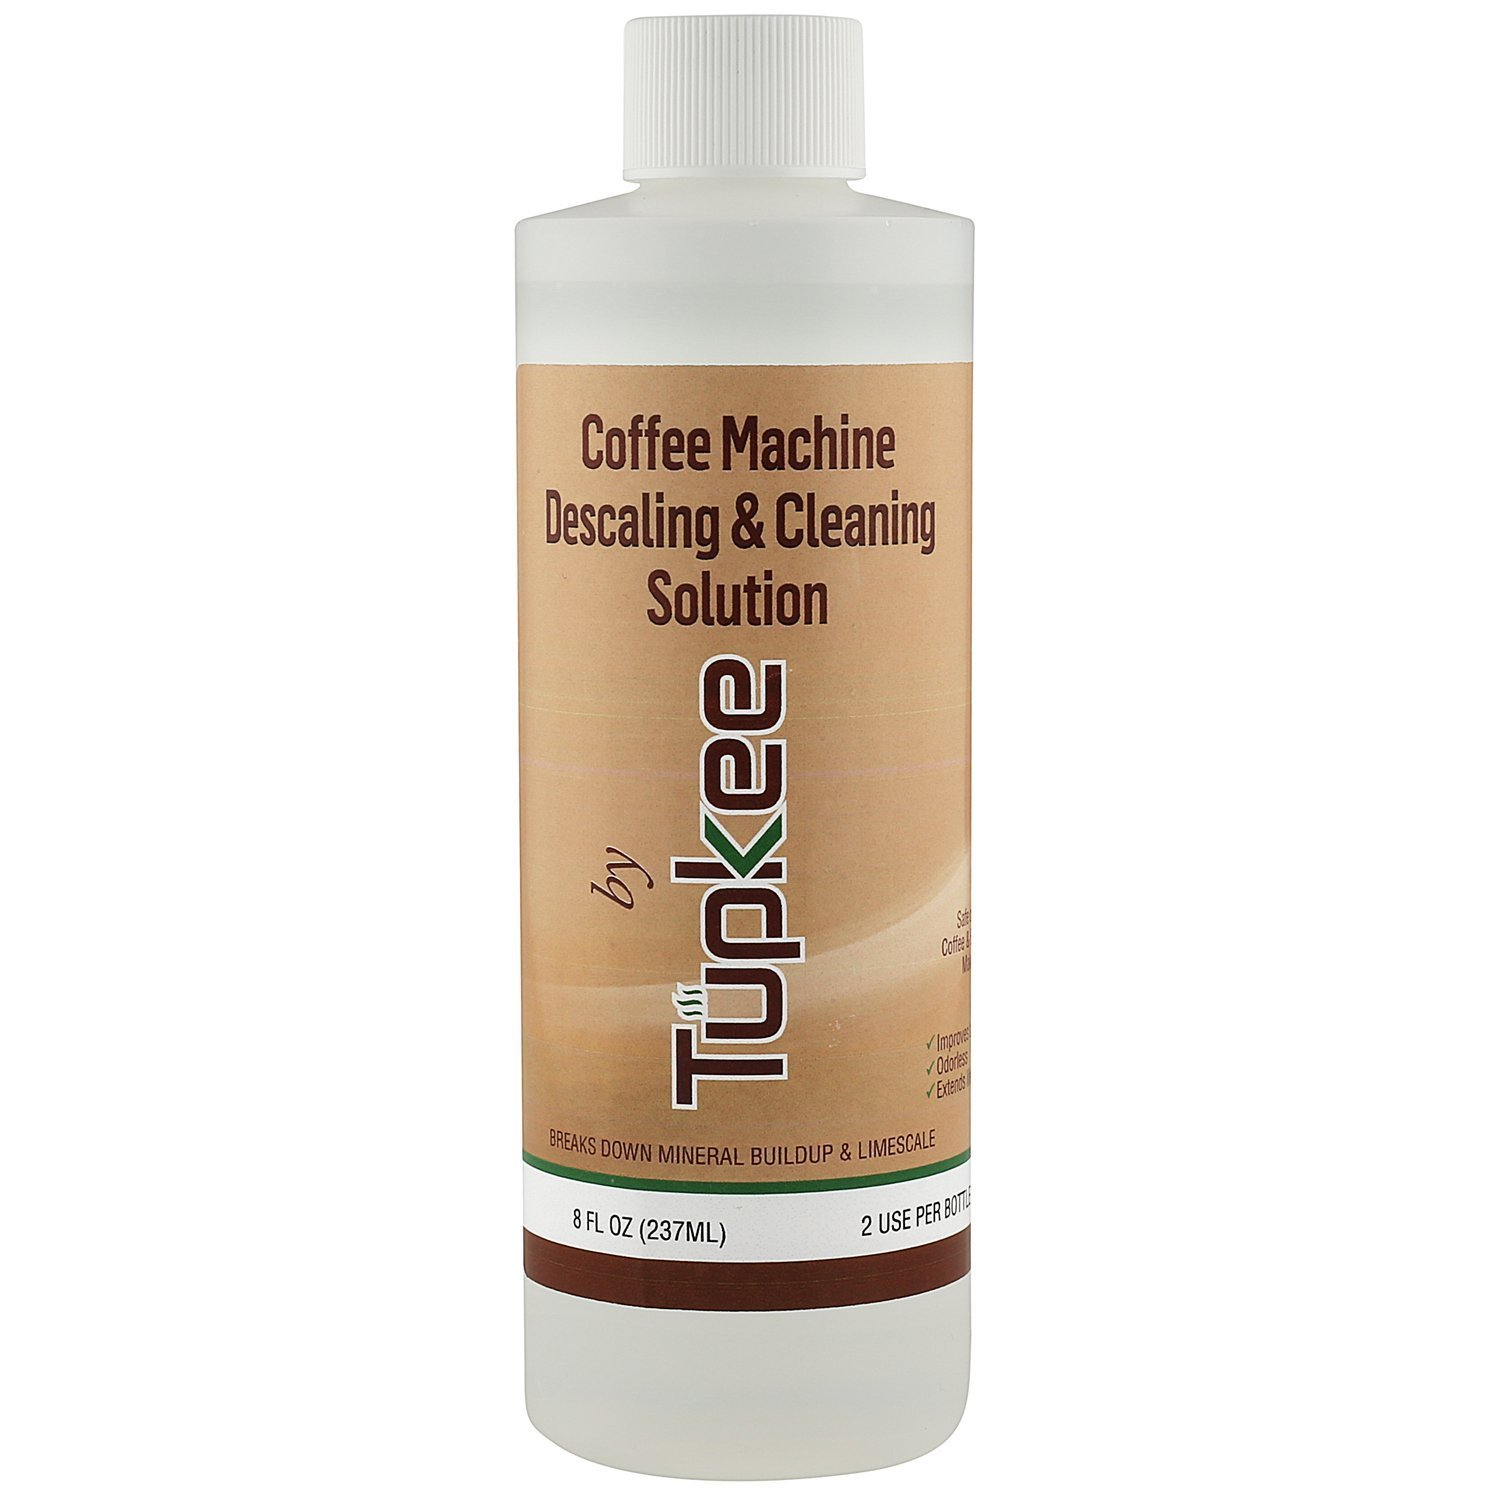 Tupkee Coffee Machine Descaler – Universal, For Drip Coffee Maker, Espresso and Keurig Coffee Machines Descaling & Cleaning Solution, Breaks Down Mineral Buildup and Limescale